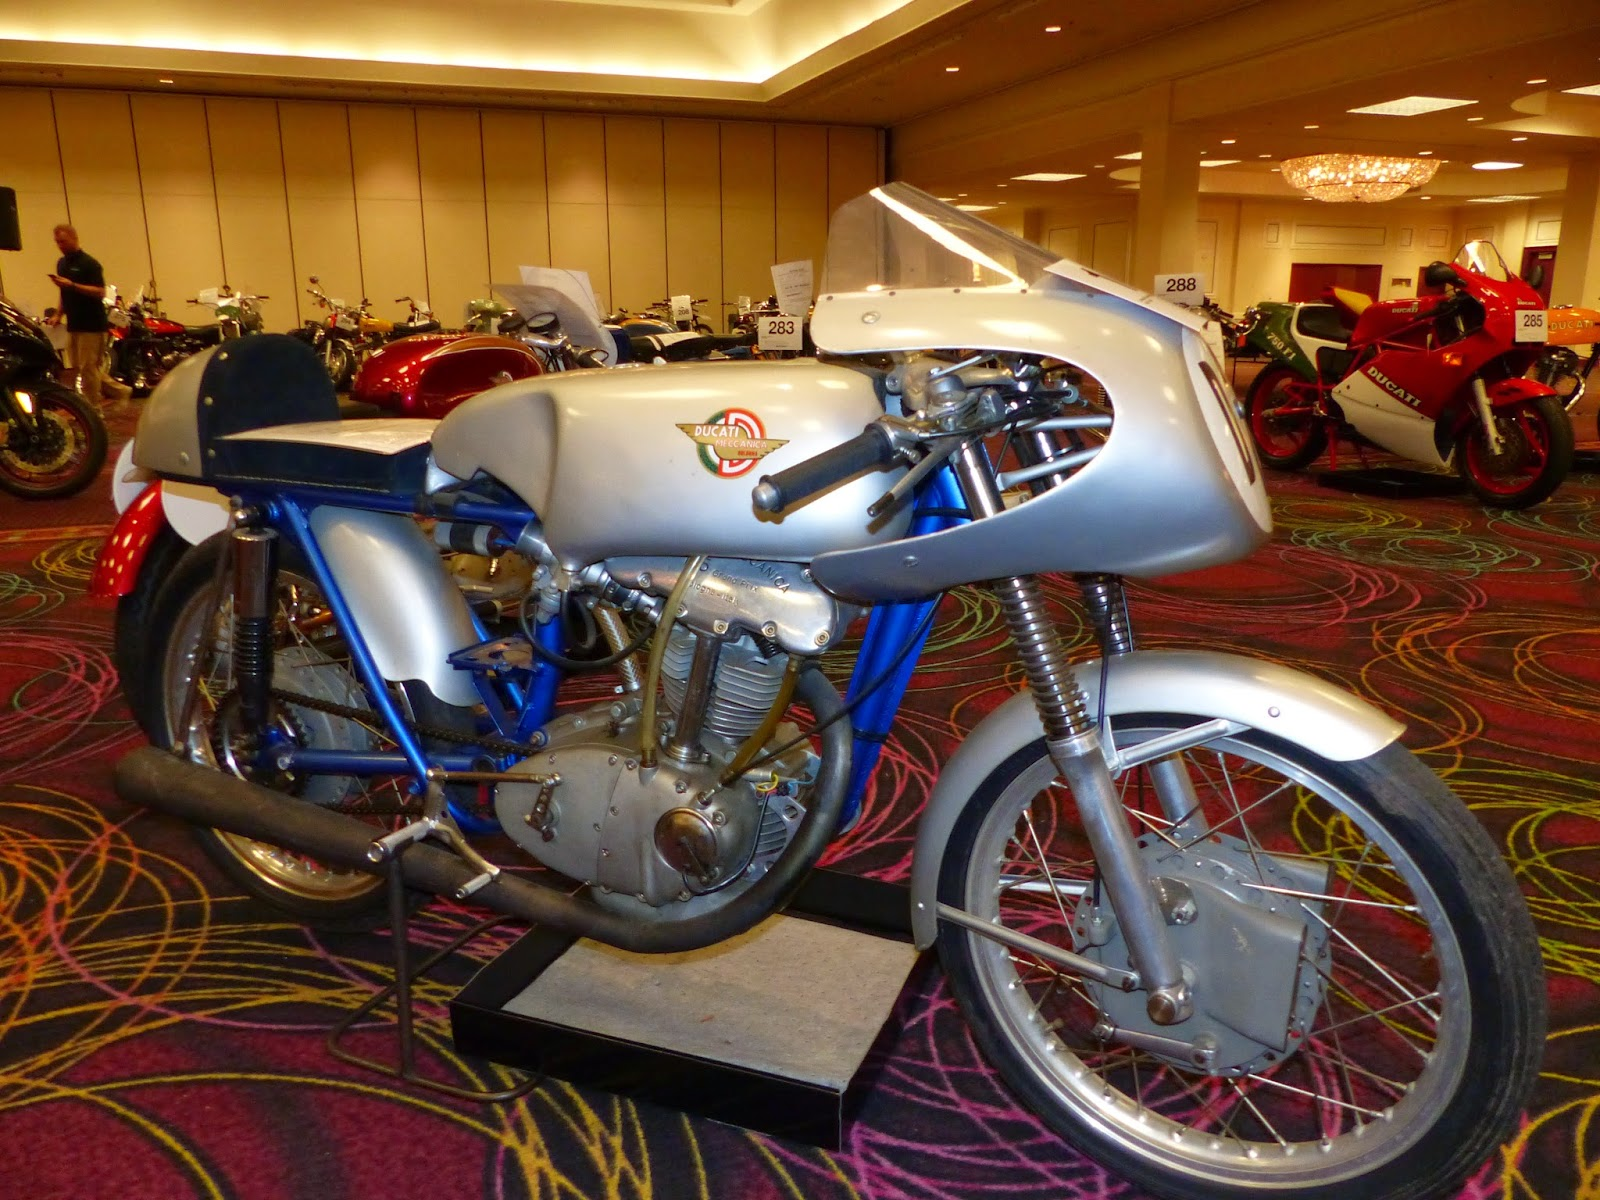 ducati 125 for sale – idea di immagine del motociclo